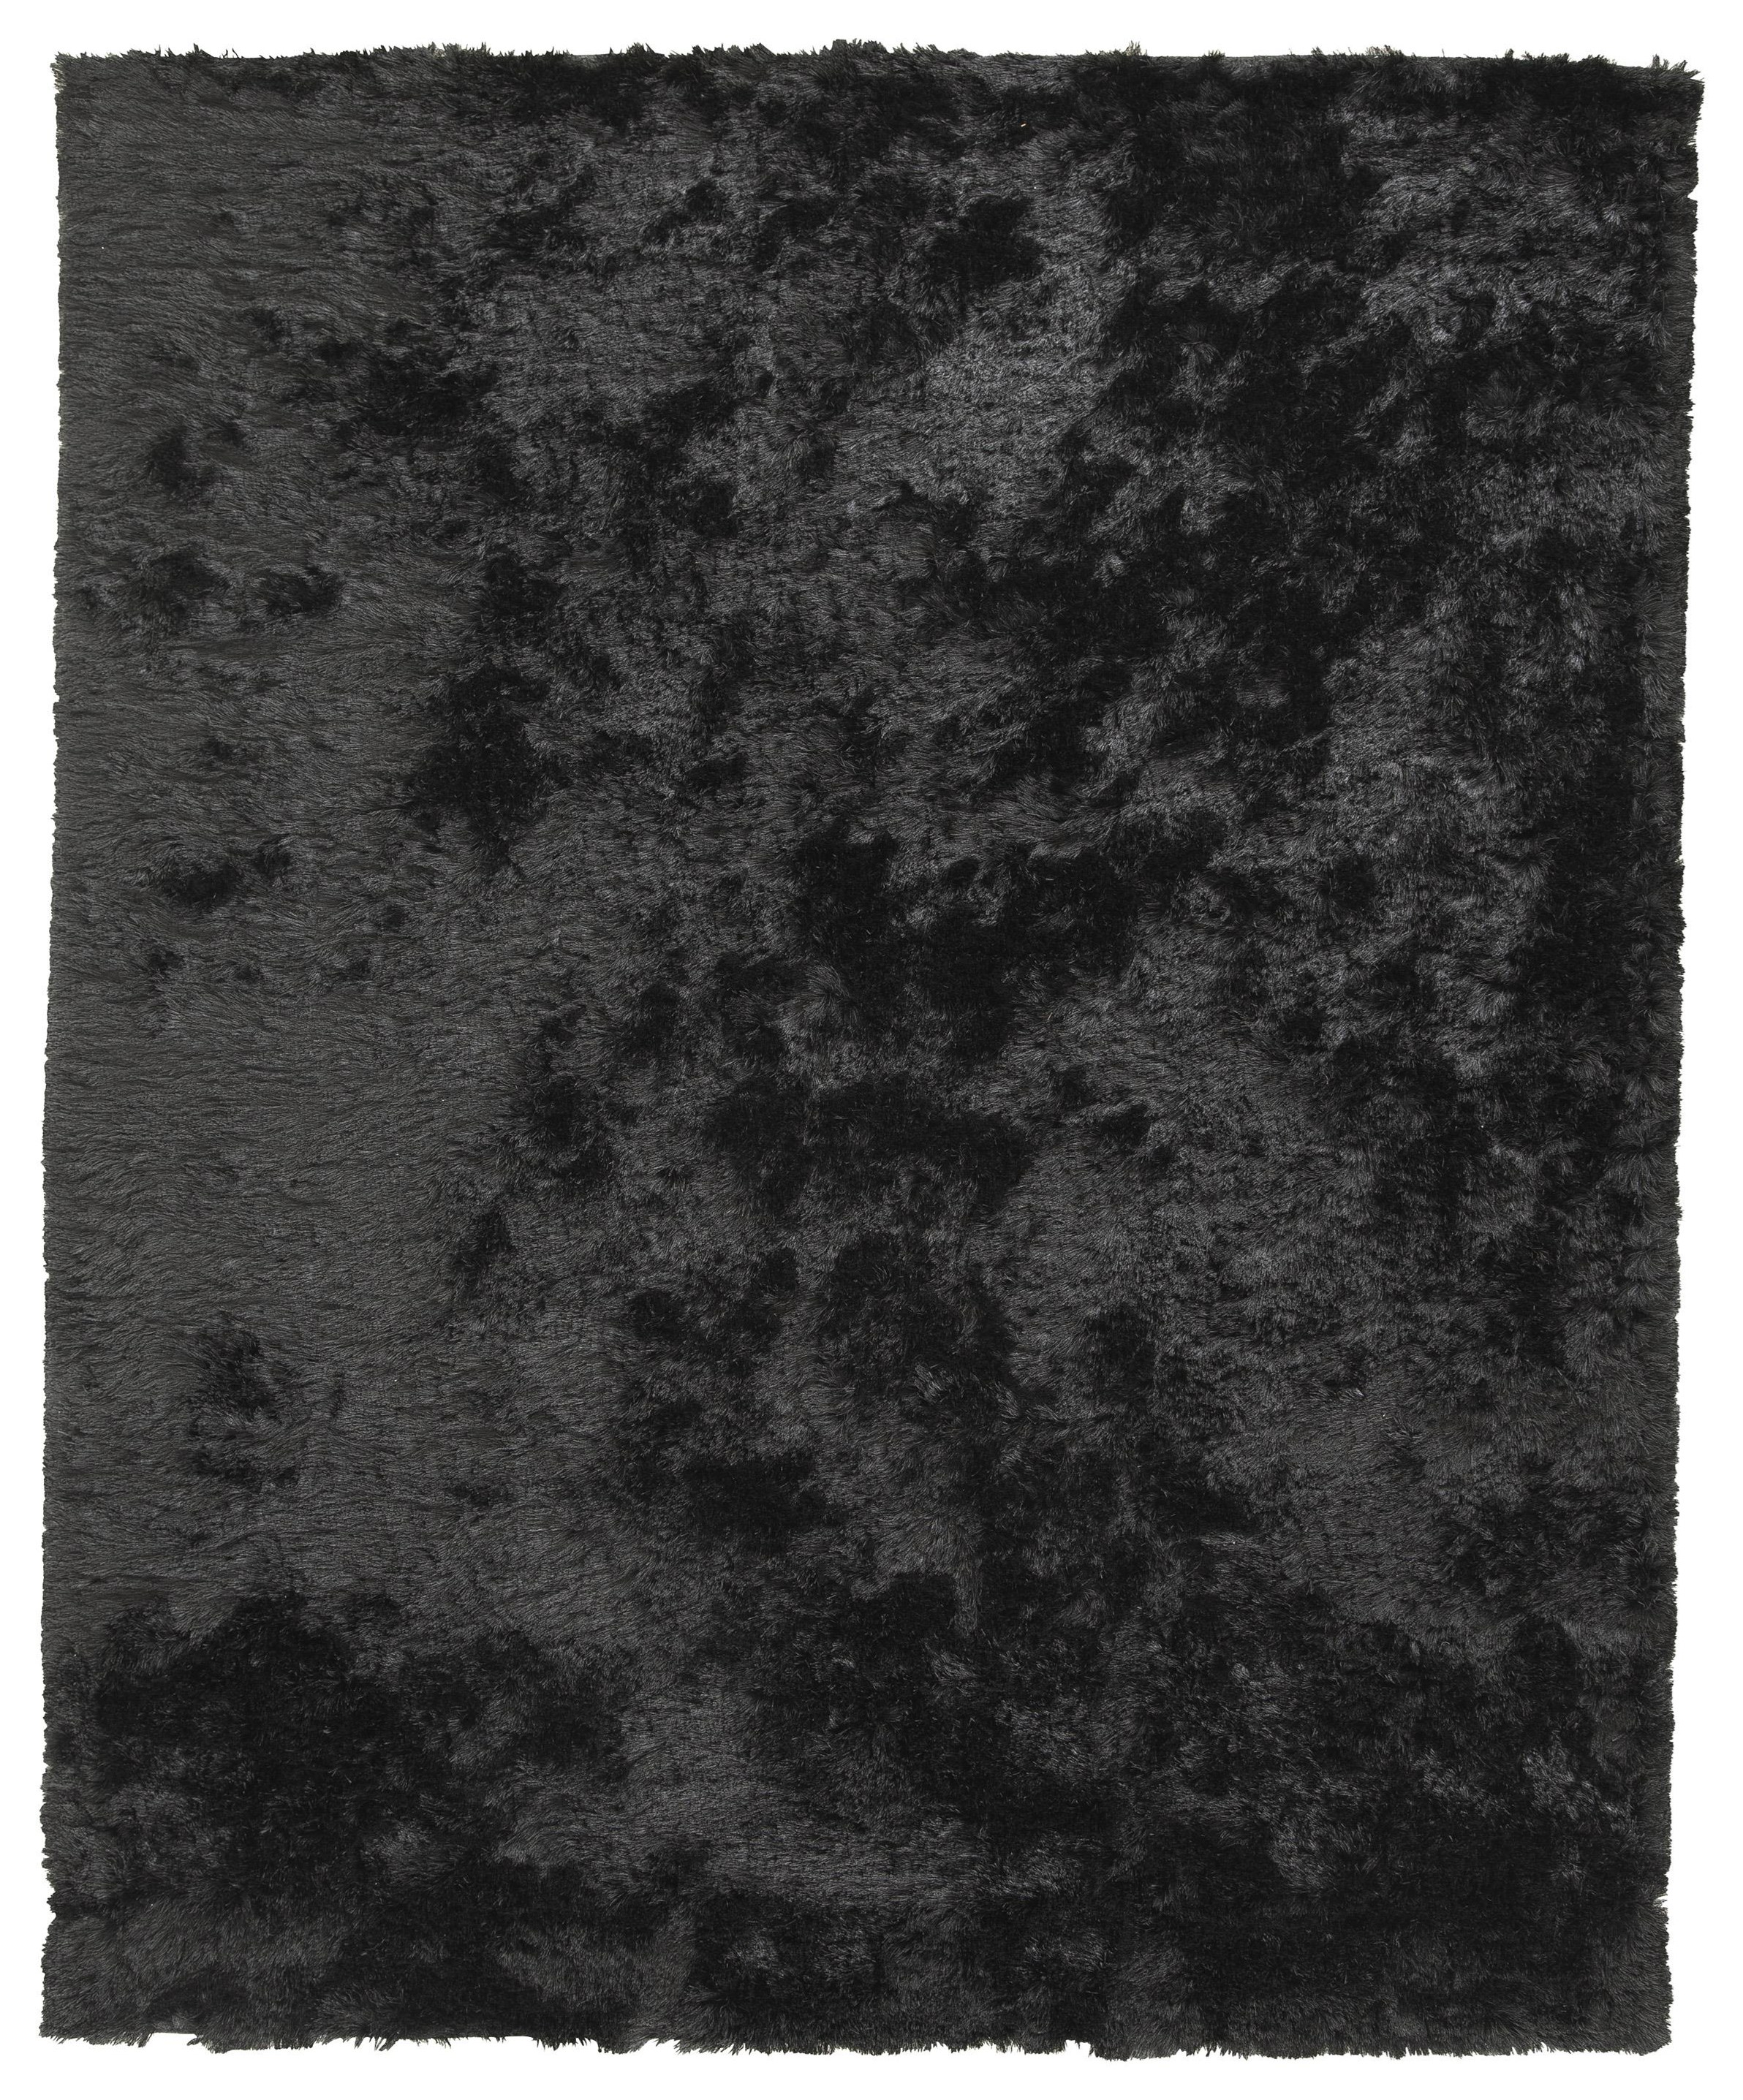 Mattford 5x7 Area Rug by Signature Design by Ashley at Sam Levitz Outlet